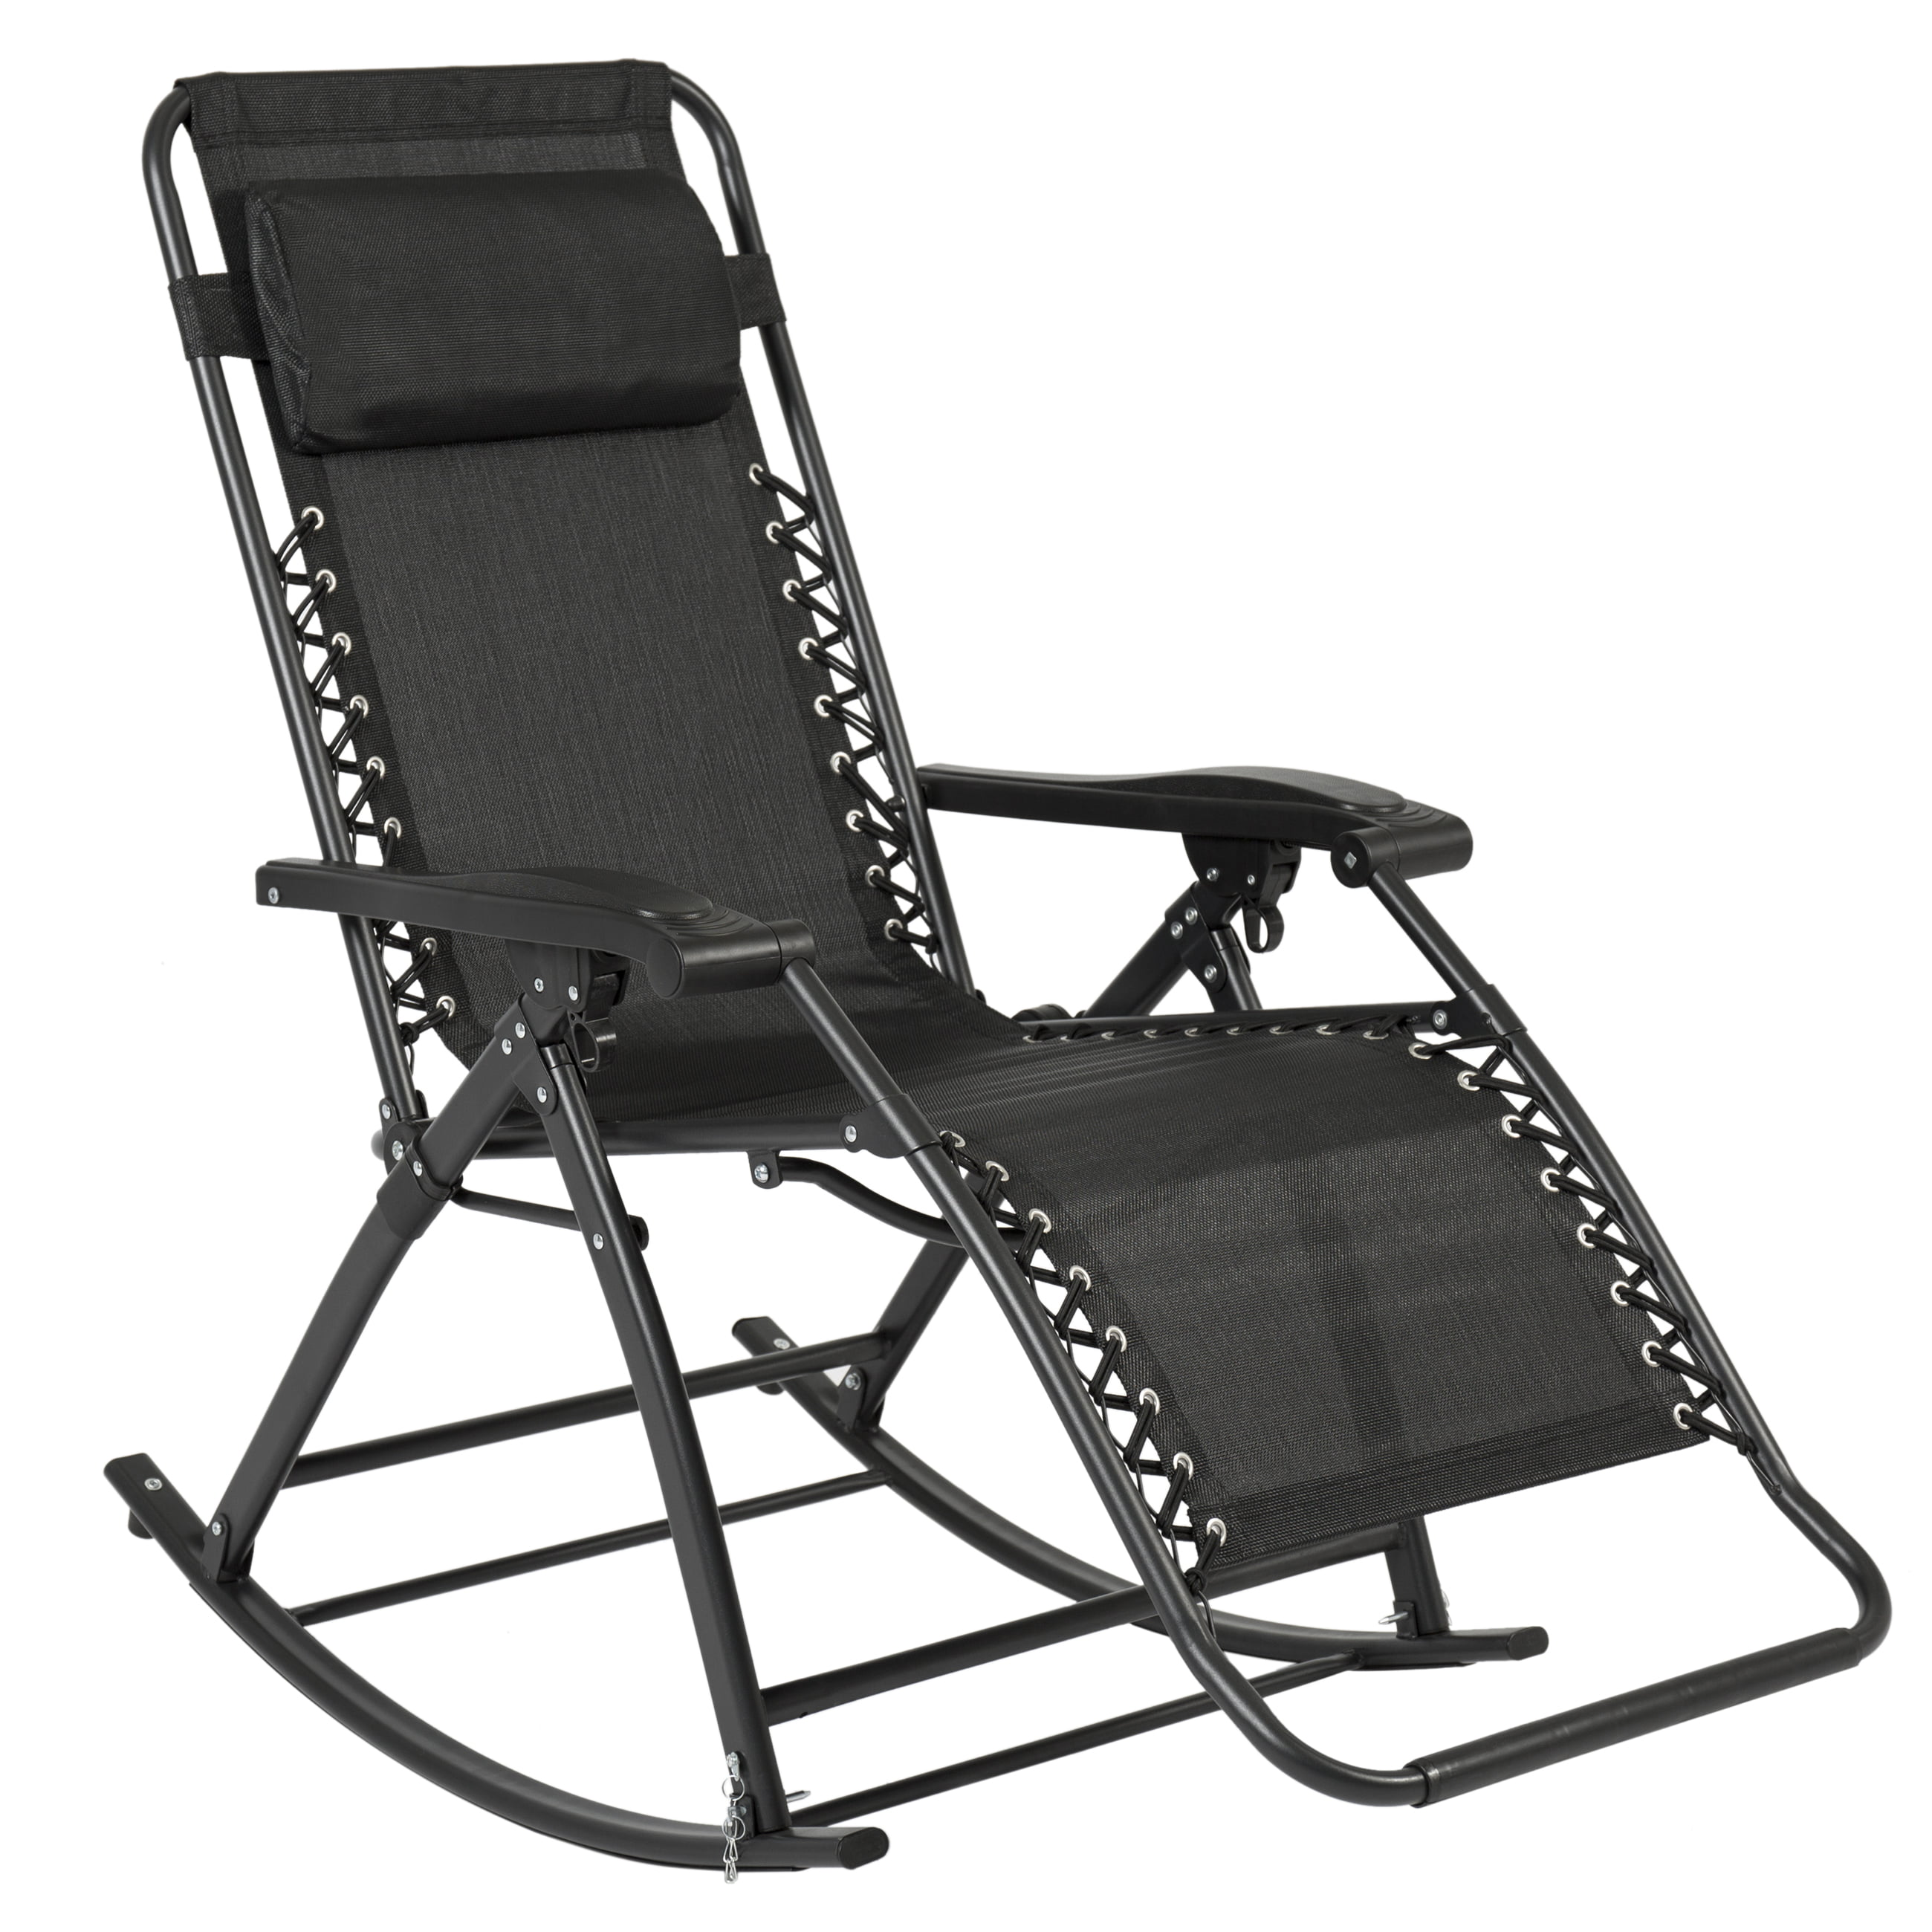 Walmart Outdoor Rocking Chairs Portable Rocking Chair